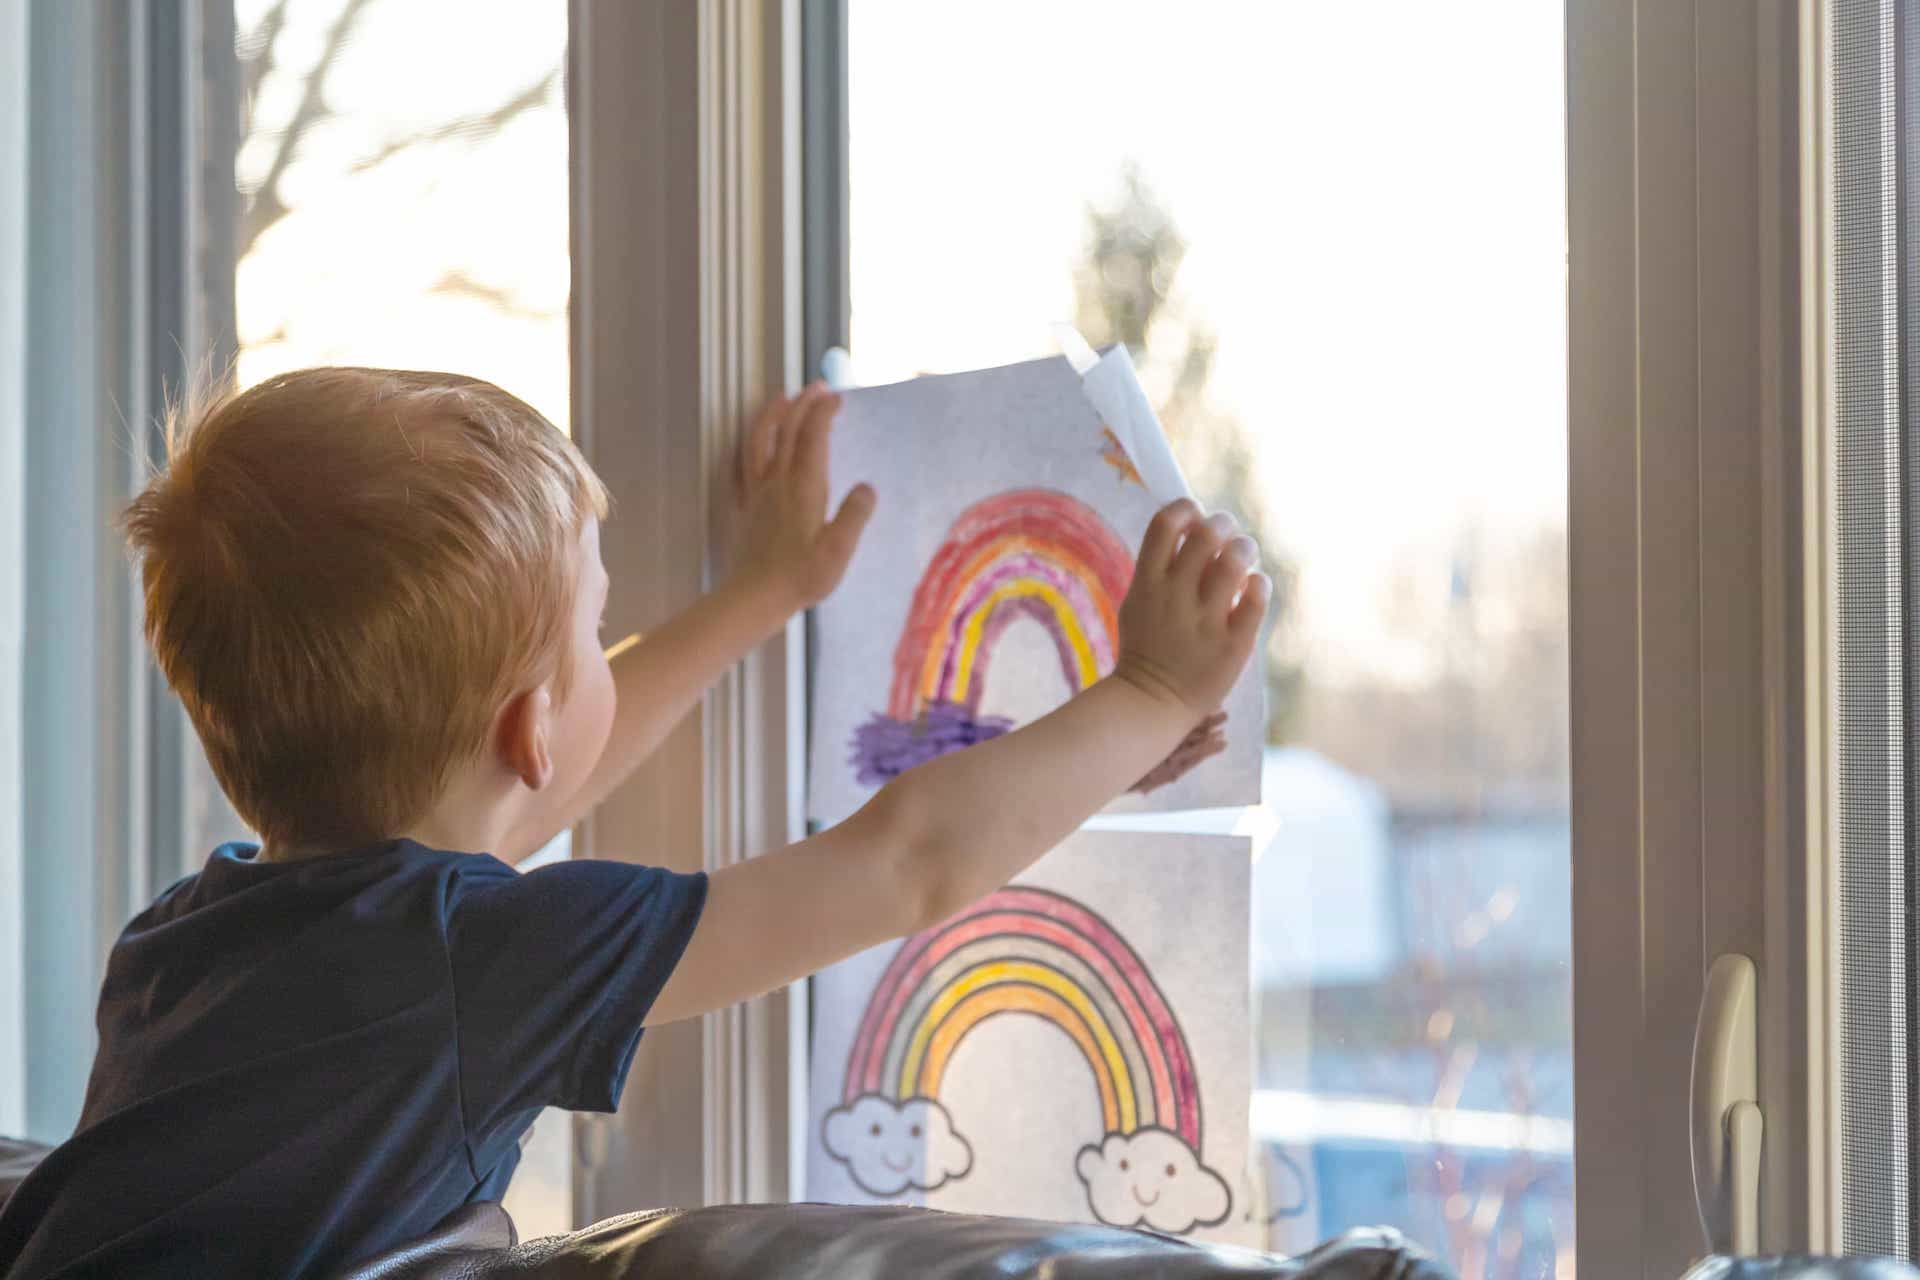 Boy holding up rainbow picture to a window